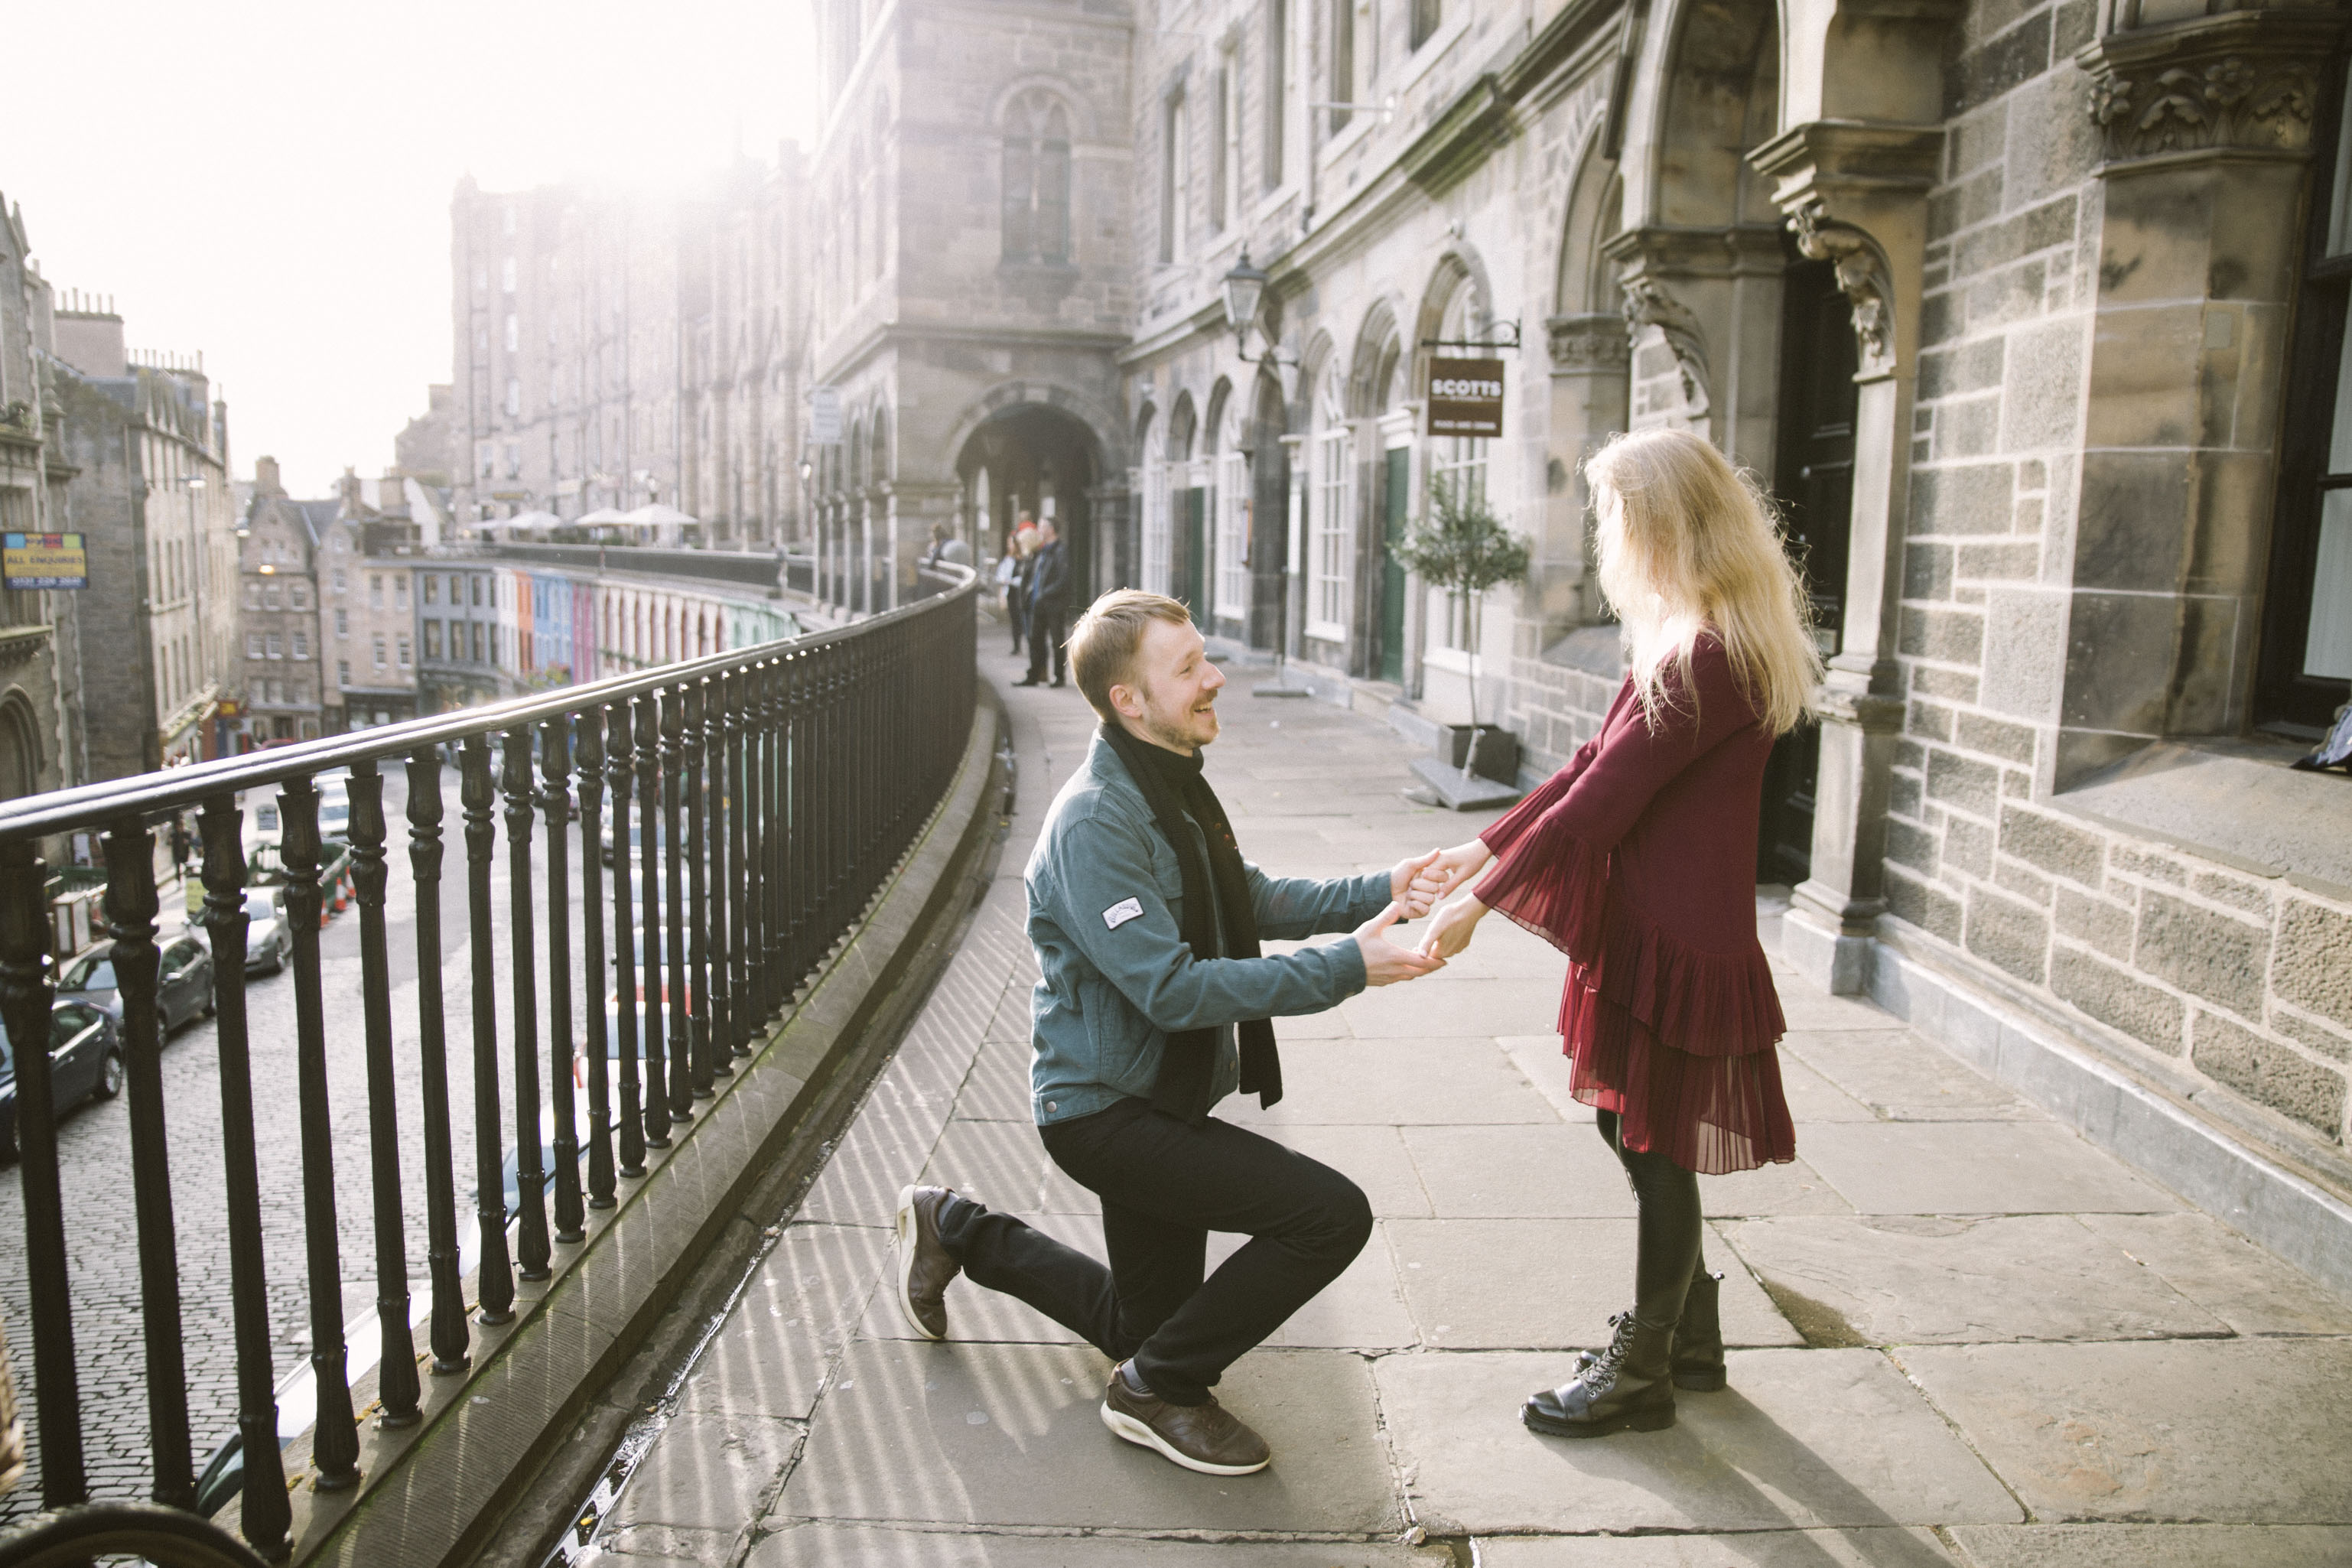 Edinburgh Proposal, Victoria Street, Wedding Photography, Romantic Edinburgh Street Old Town Couple Photoshoot | Pre Wedding Photography | Engagement Portraits Scotland | Destination Elopement | Elope in Edinburgh | Couple | Ceranna Photography | Natural Light Photographer